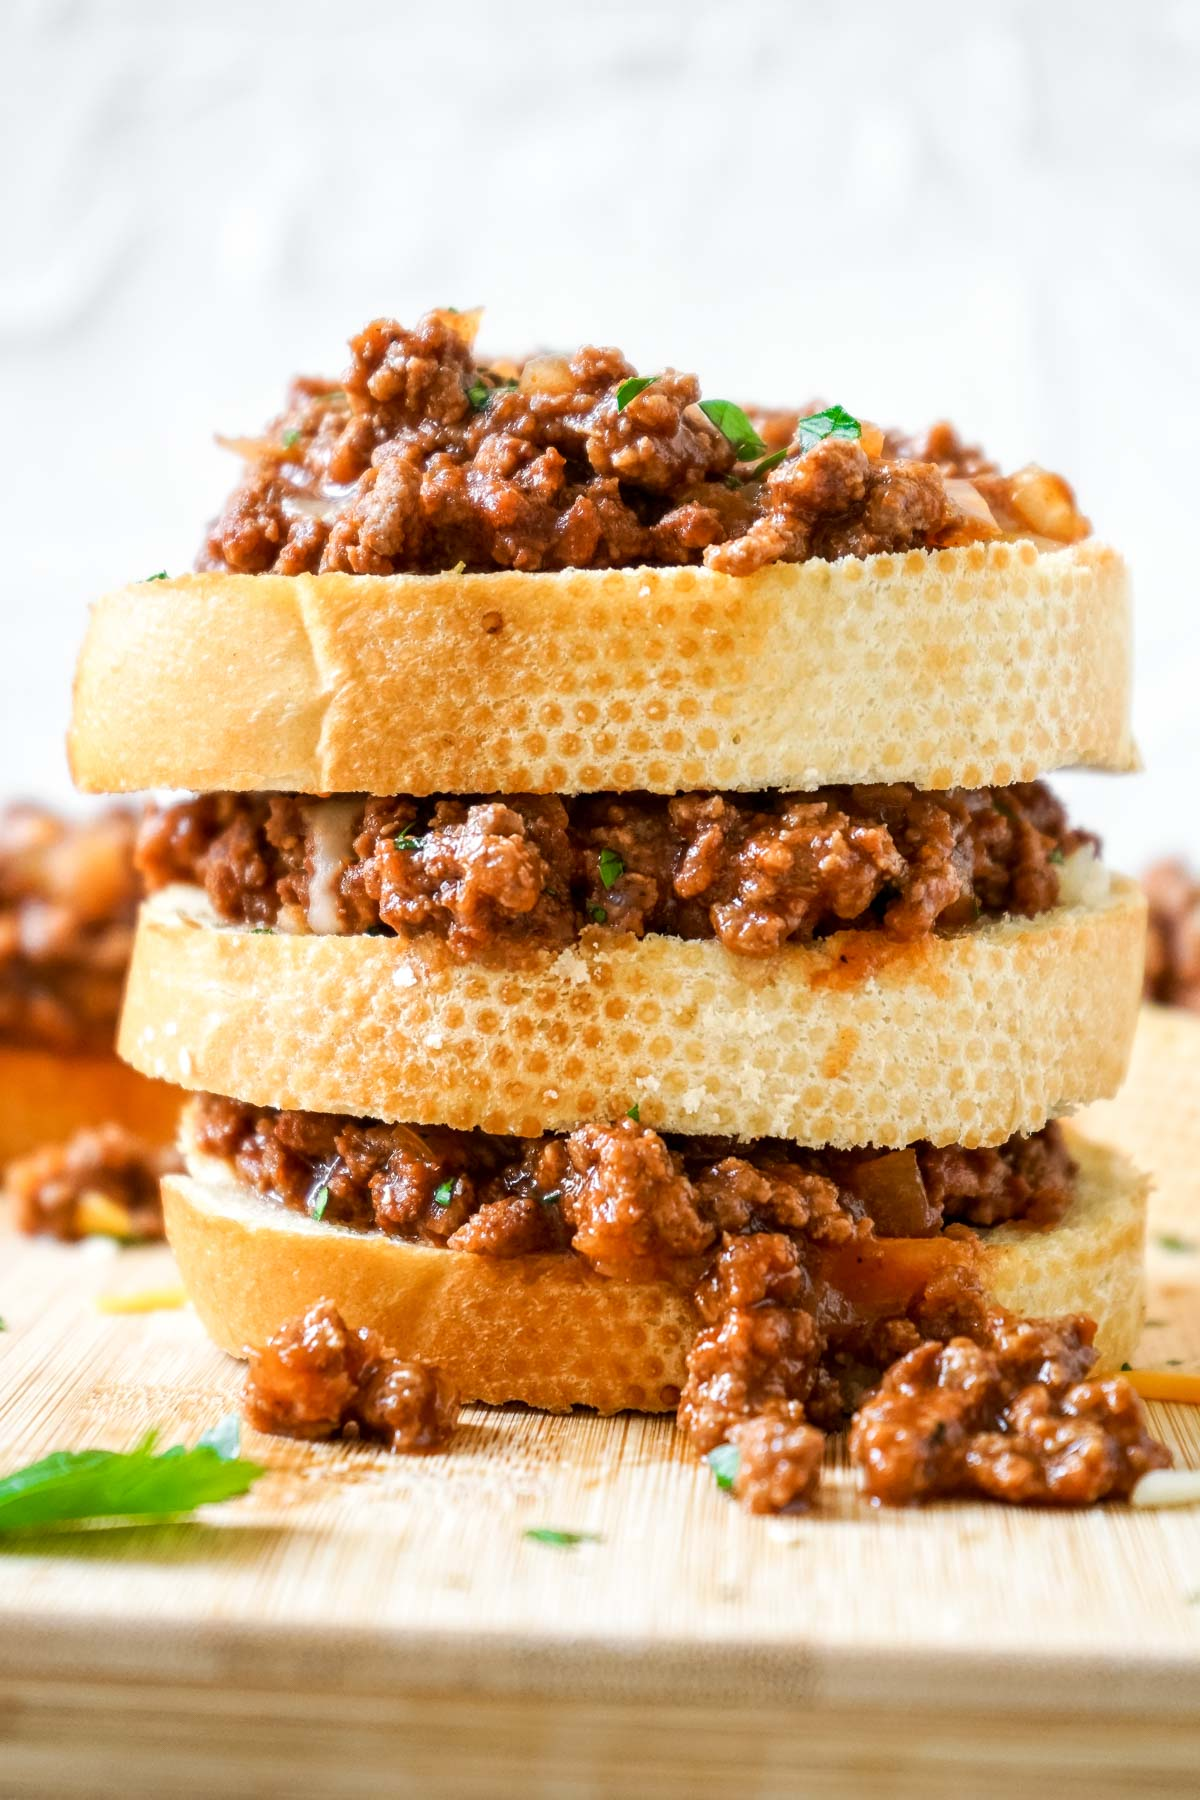 Three slices of Texas toast sloppy joes stacked on top of each other.